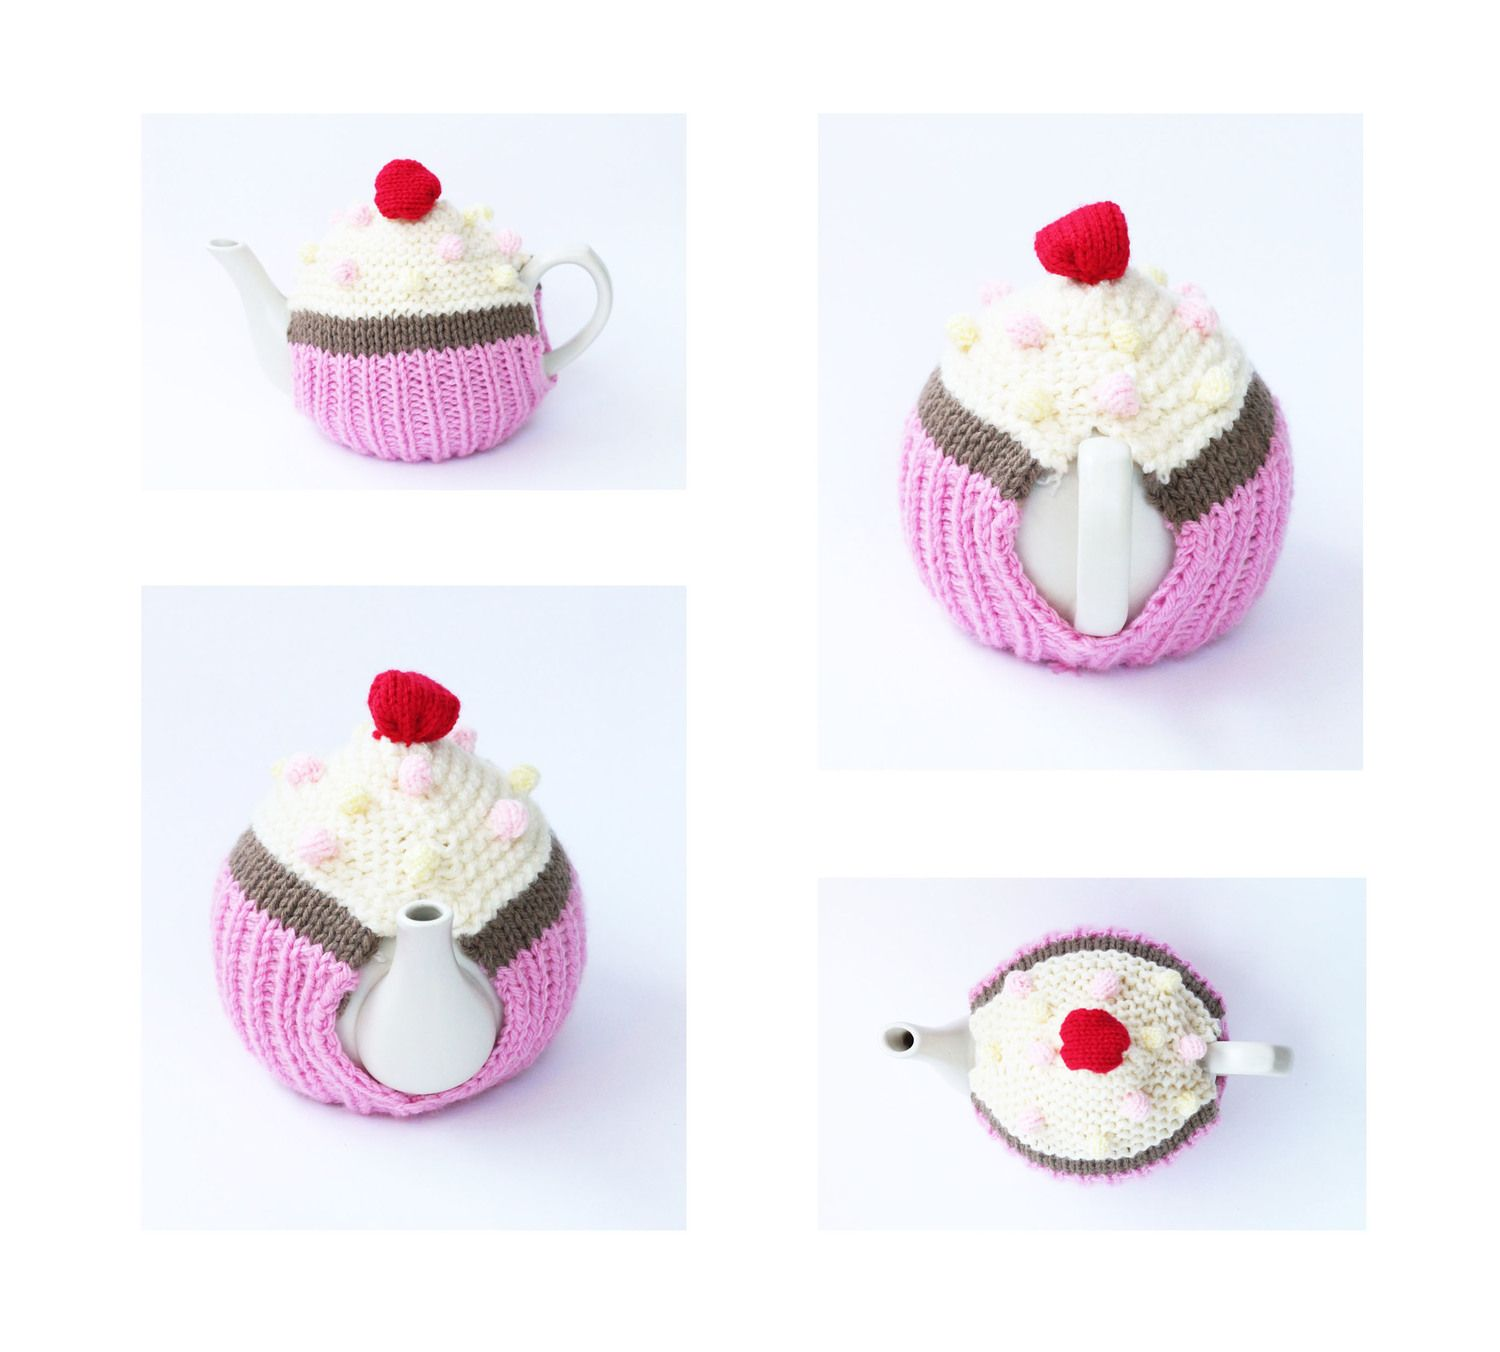 Knitted-cupcake-tea-cosy-knitting-pattern | Crafts | Pinterest ...